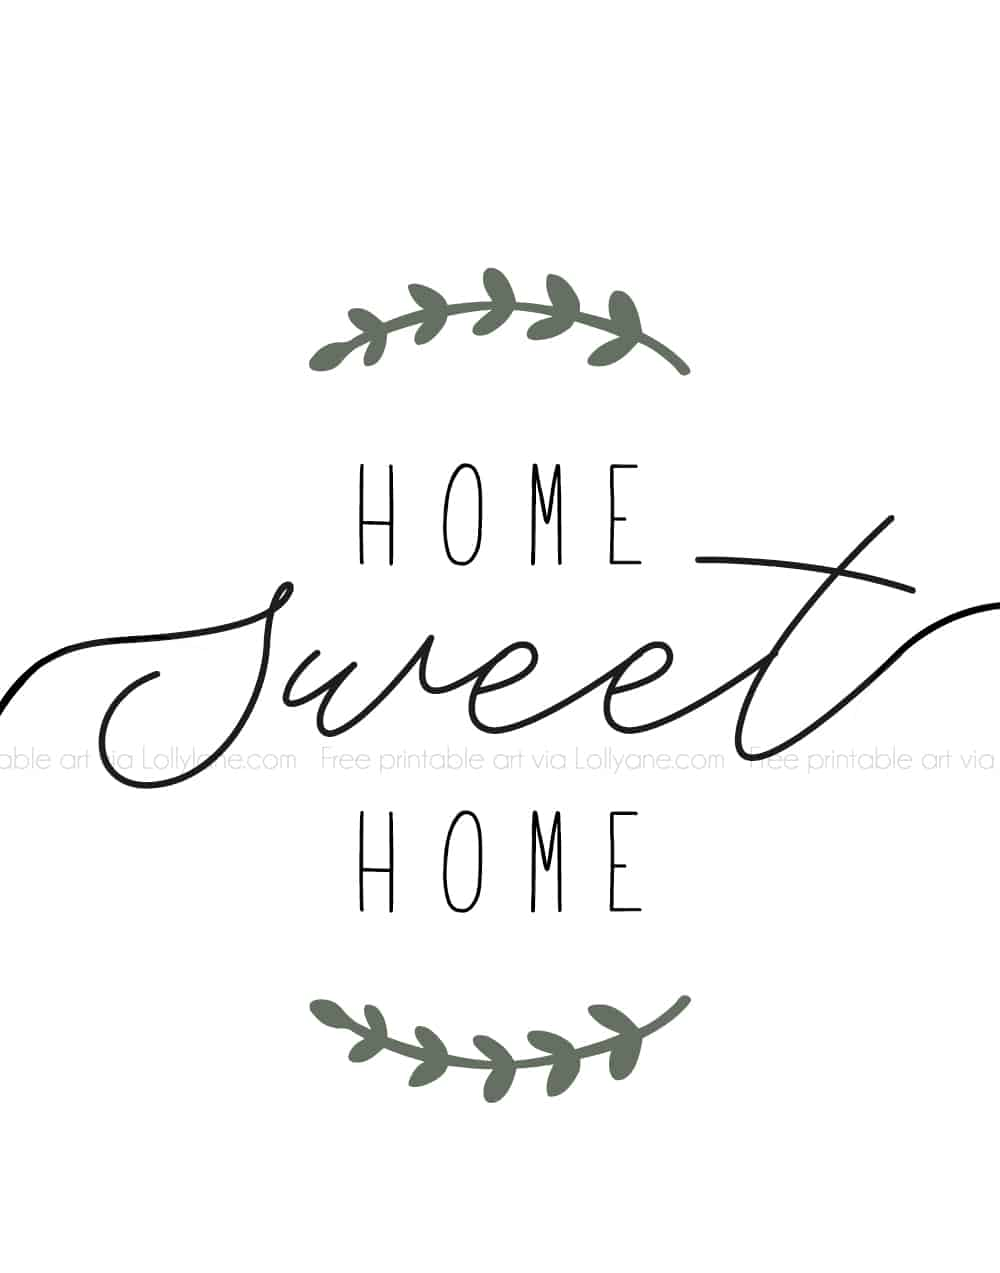 """Home Sweet Home"" printable farmhouse art. Simply print and hang to add instant farmhouse charm to your space! #farmhouse #printable #freeprintable #printableart #farmhouseart #farmhouseprintable"